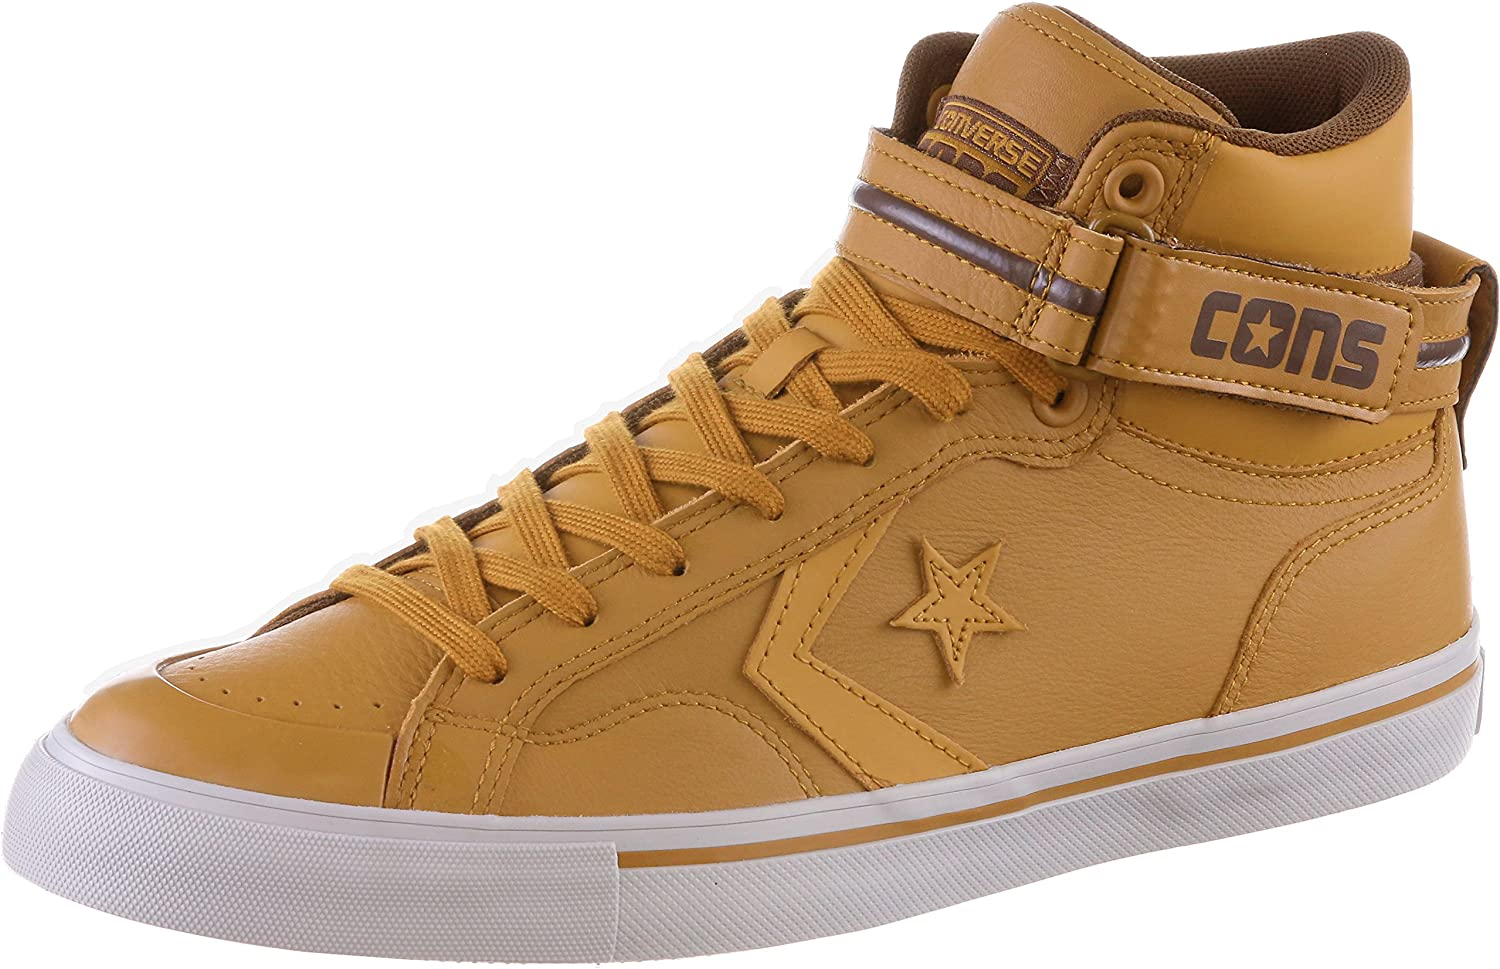 Converse Pro Blaz Plus, Unisex Adults' Hi-Top Sneakers